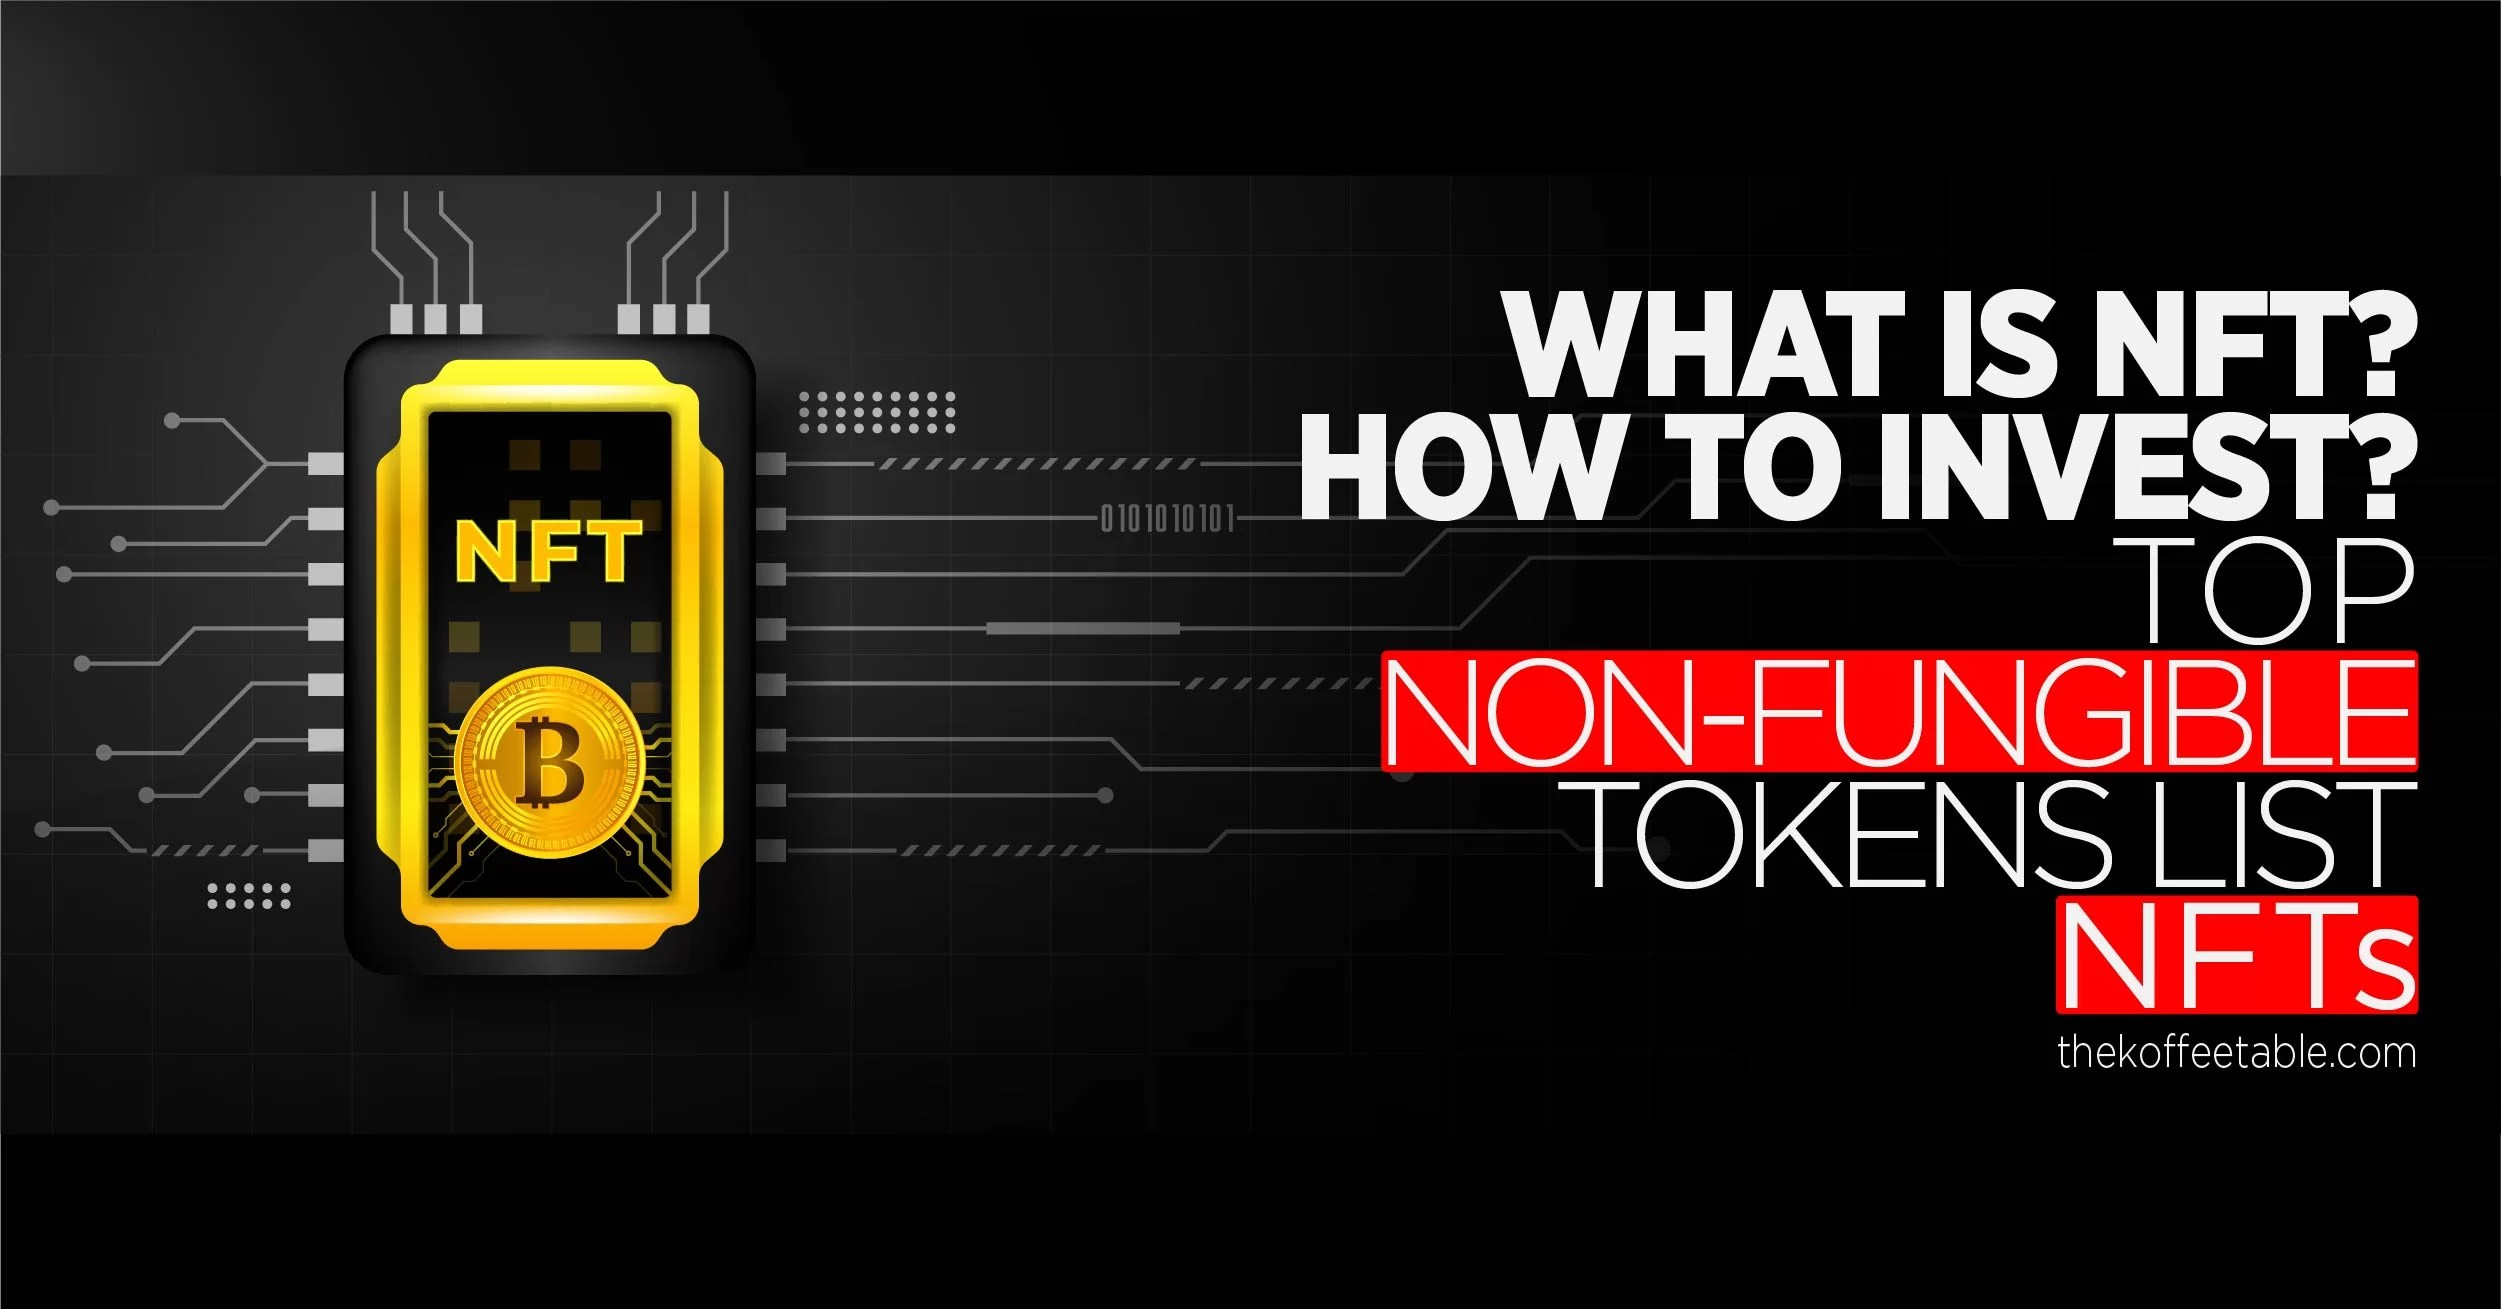 You are currently viewing NFT meaning? How to invest in nft? Top Non-Fungible Tokens list (nfts)